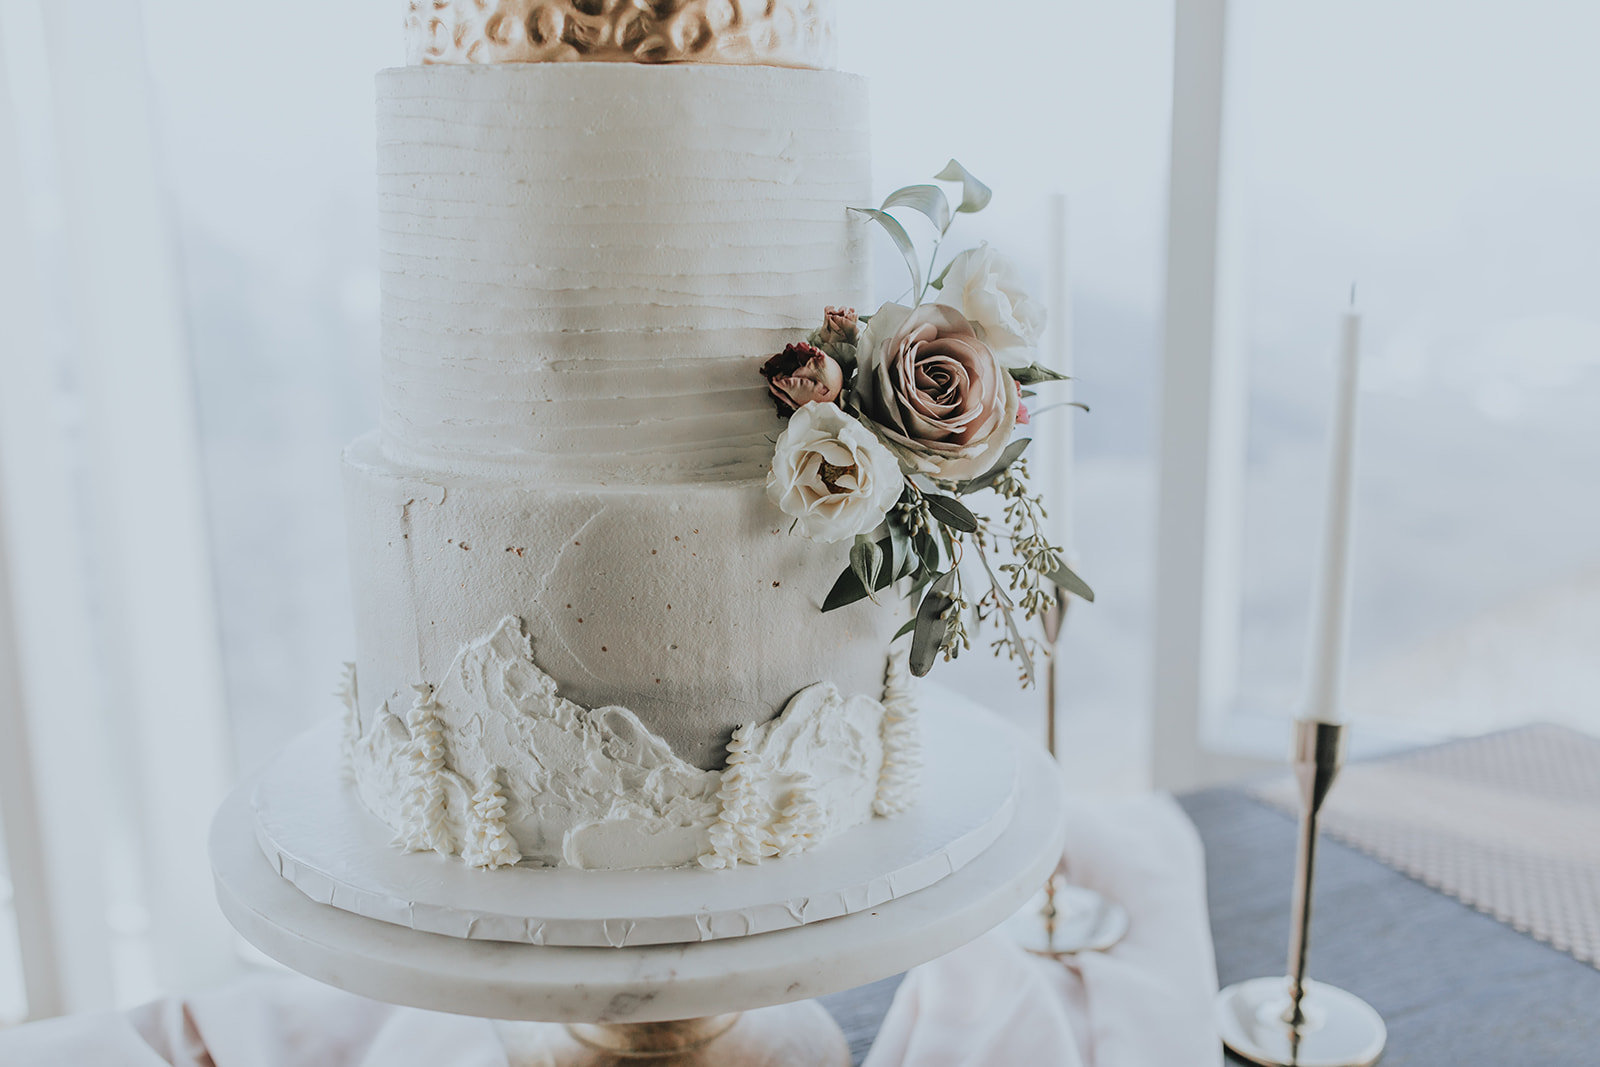 beautiful wedding cake with a mountain theme made by Bake My Day